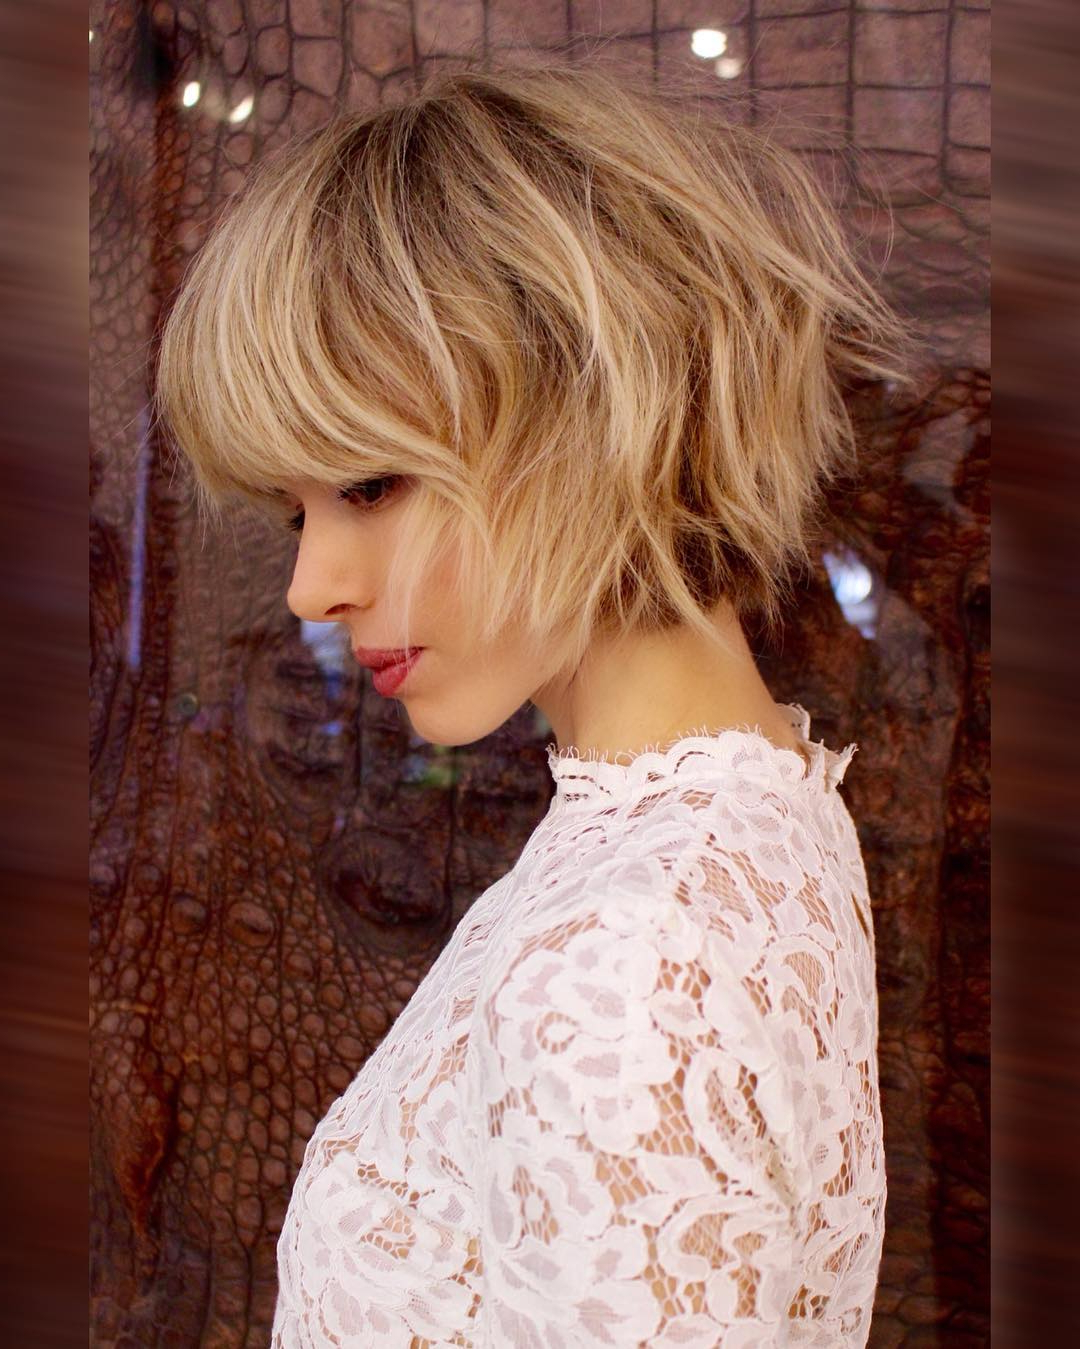 10 Short Shag Hairstyles For Women – 2018 Simple Haircuts For Short Hair Throughout Feminine Short Hairstyles For Women (View 16 of 25)